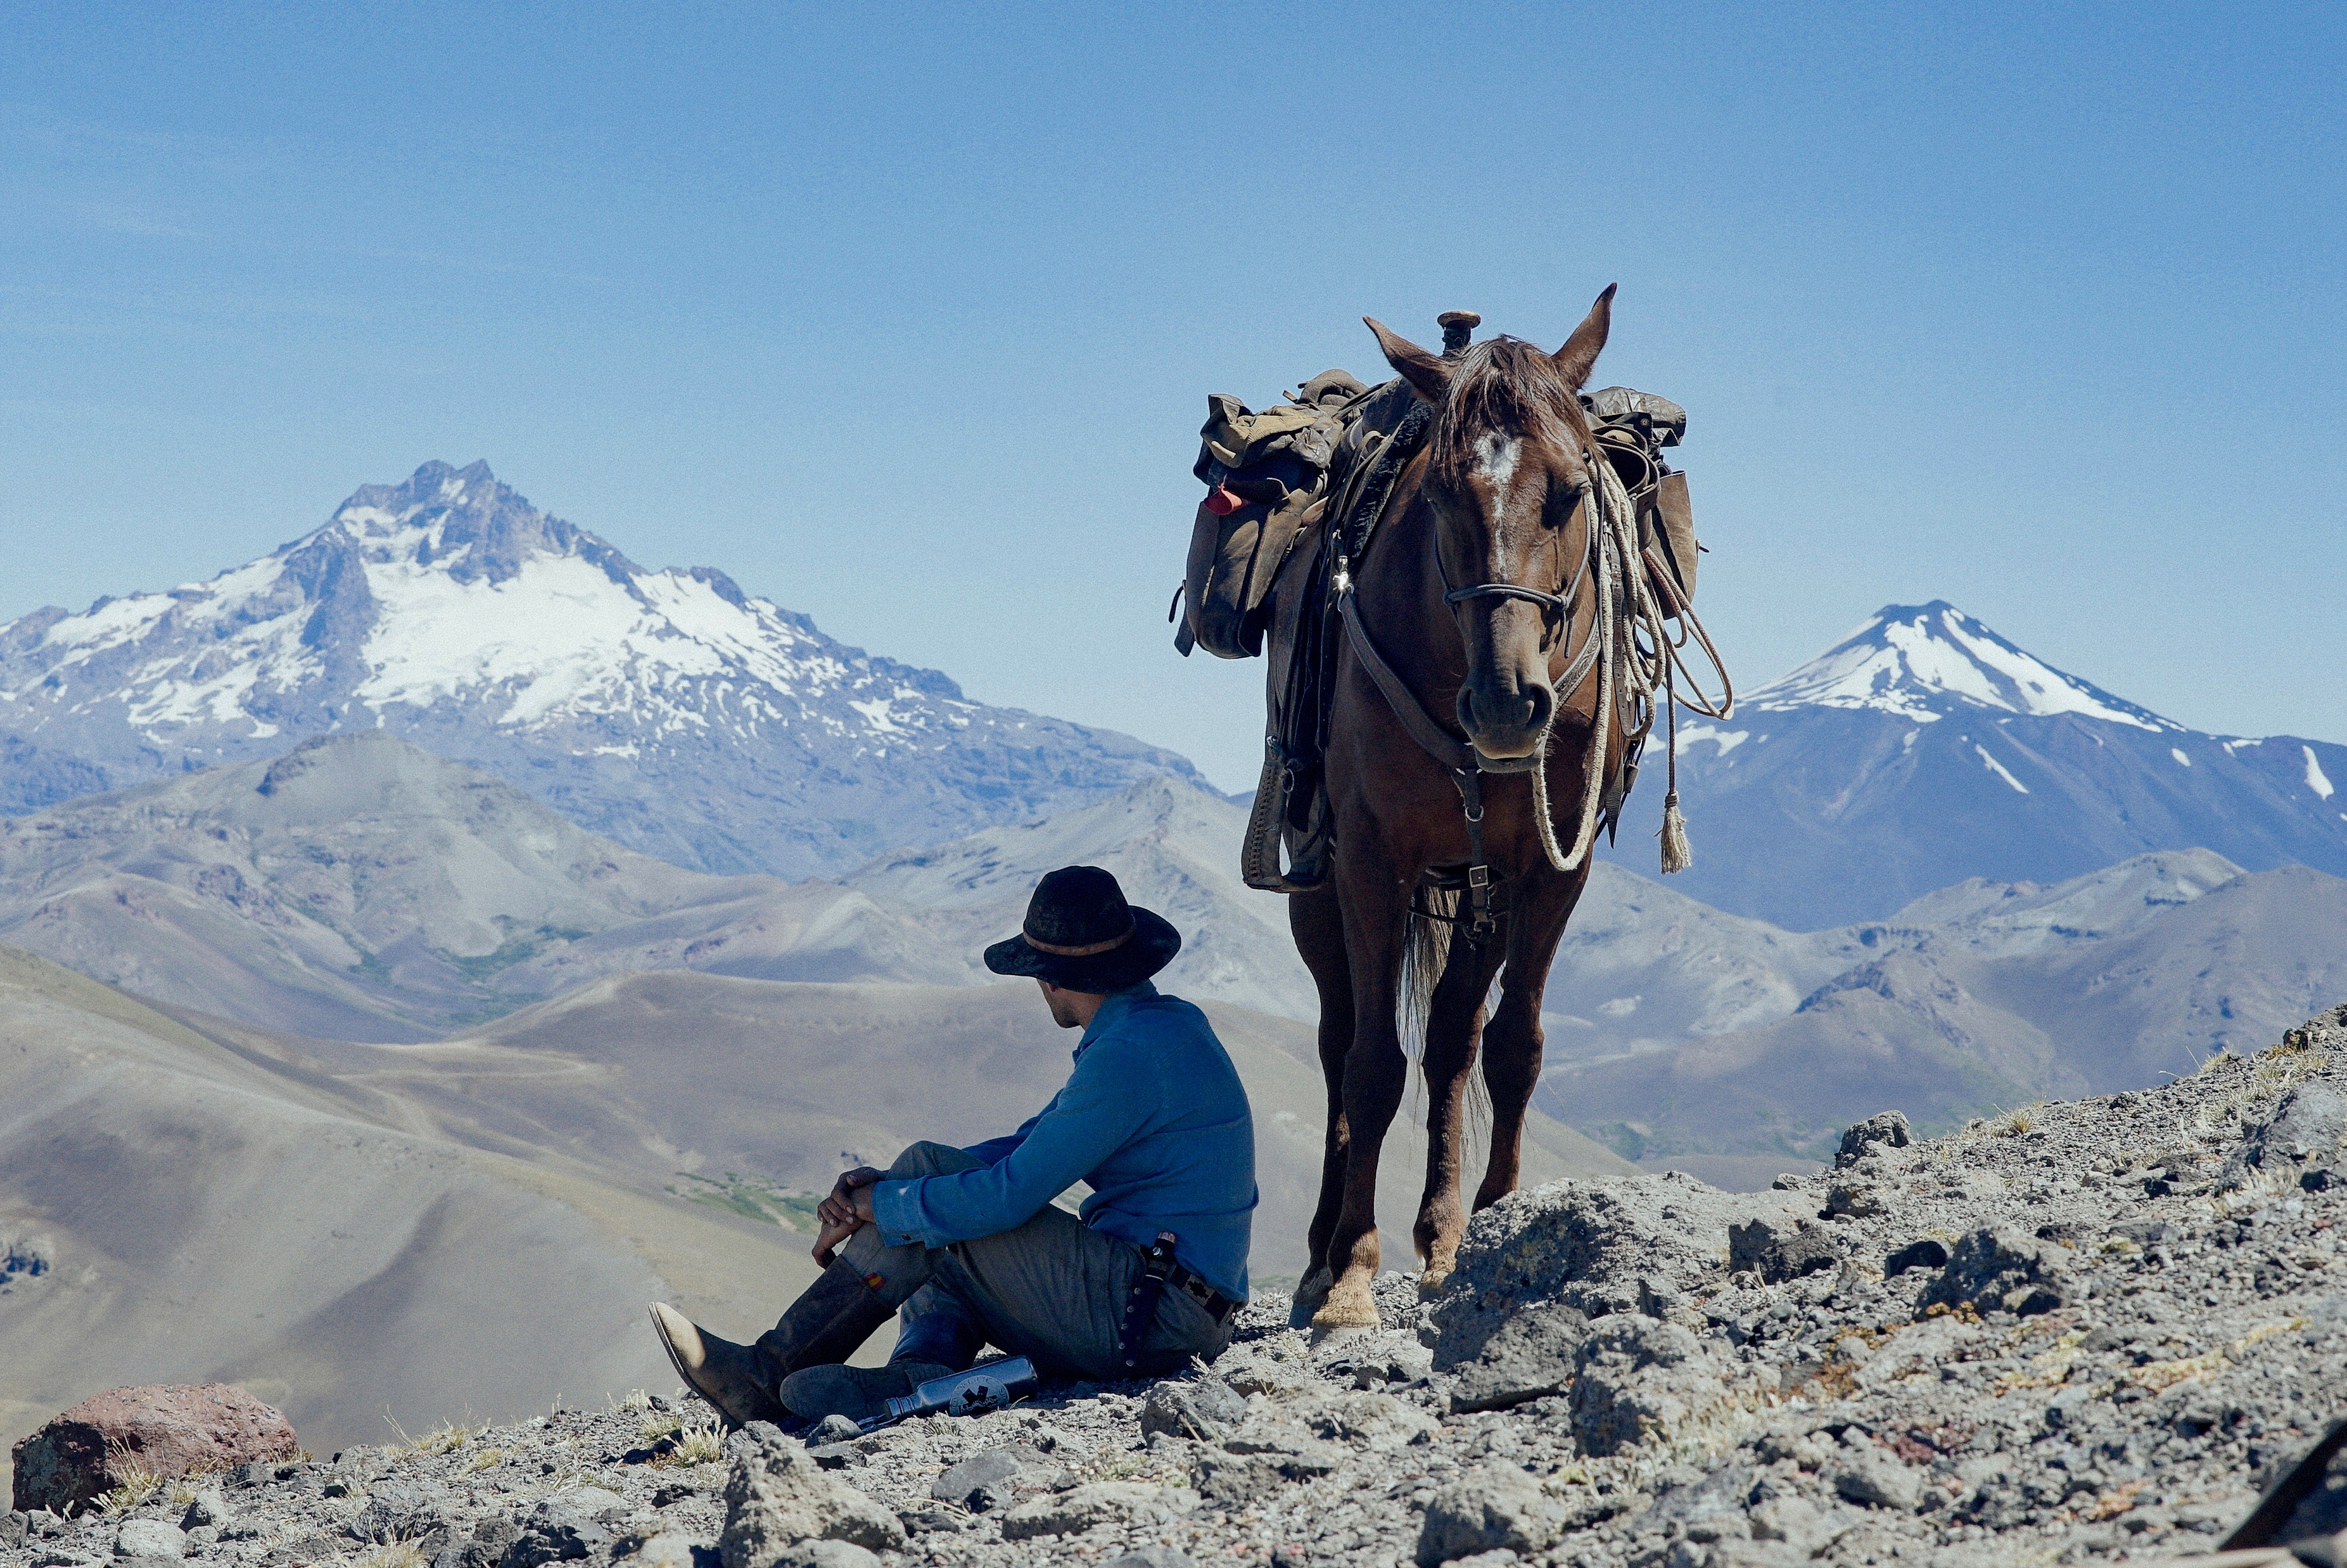 Man sitting next to horse overlooking snow capped mountains in Patagonia